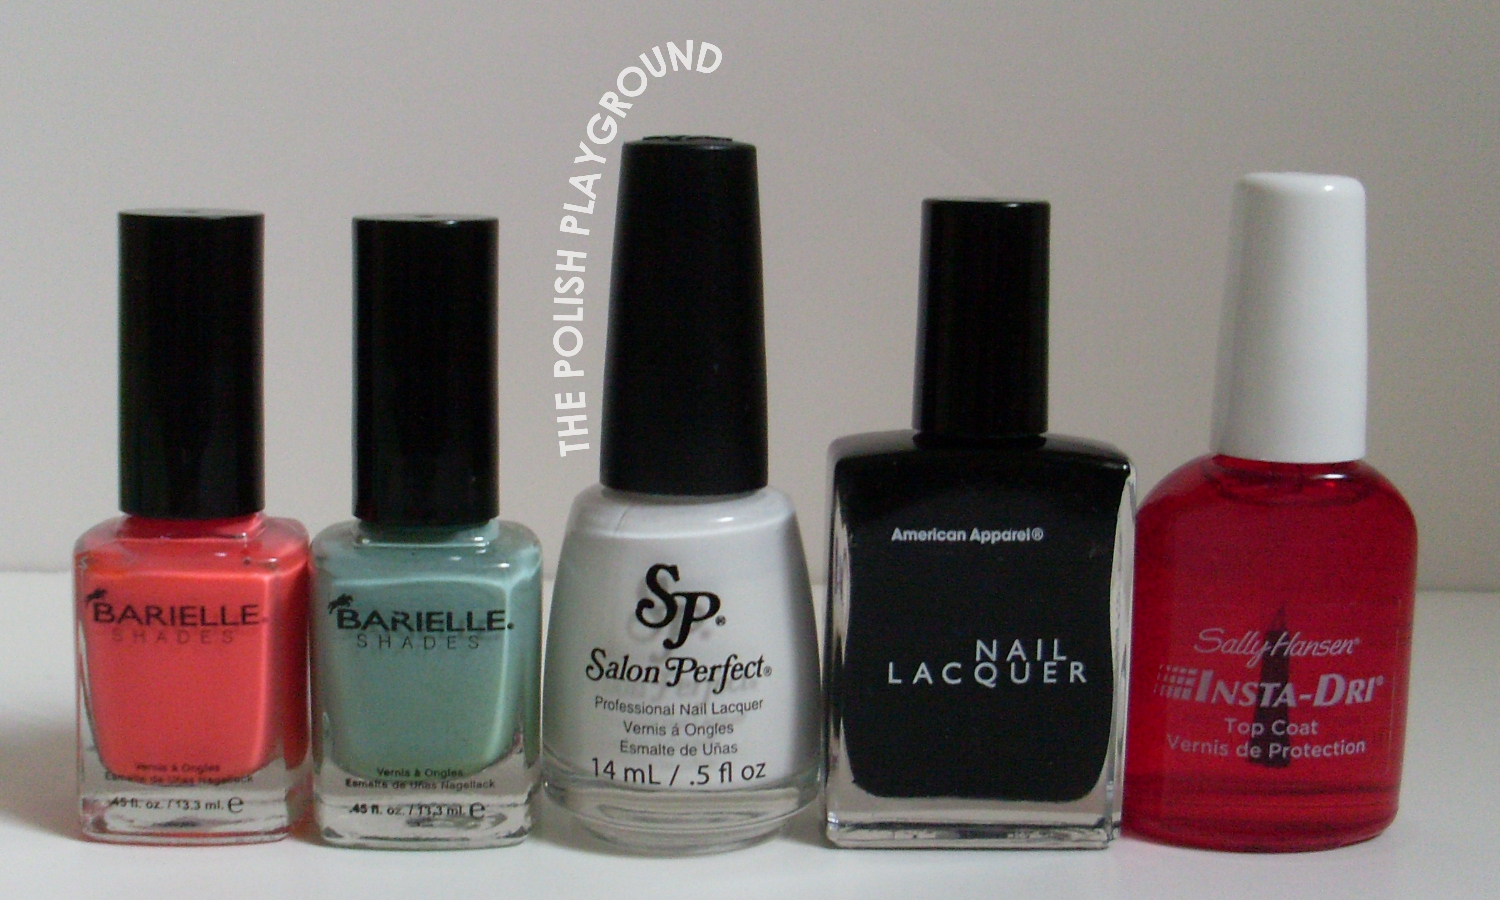 Barielle, Salon Perfect, American Apparel, Sally Hansen